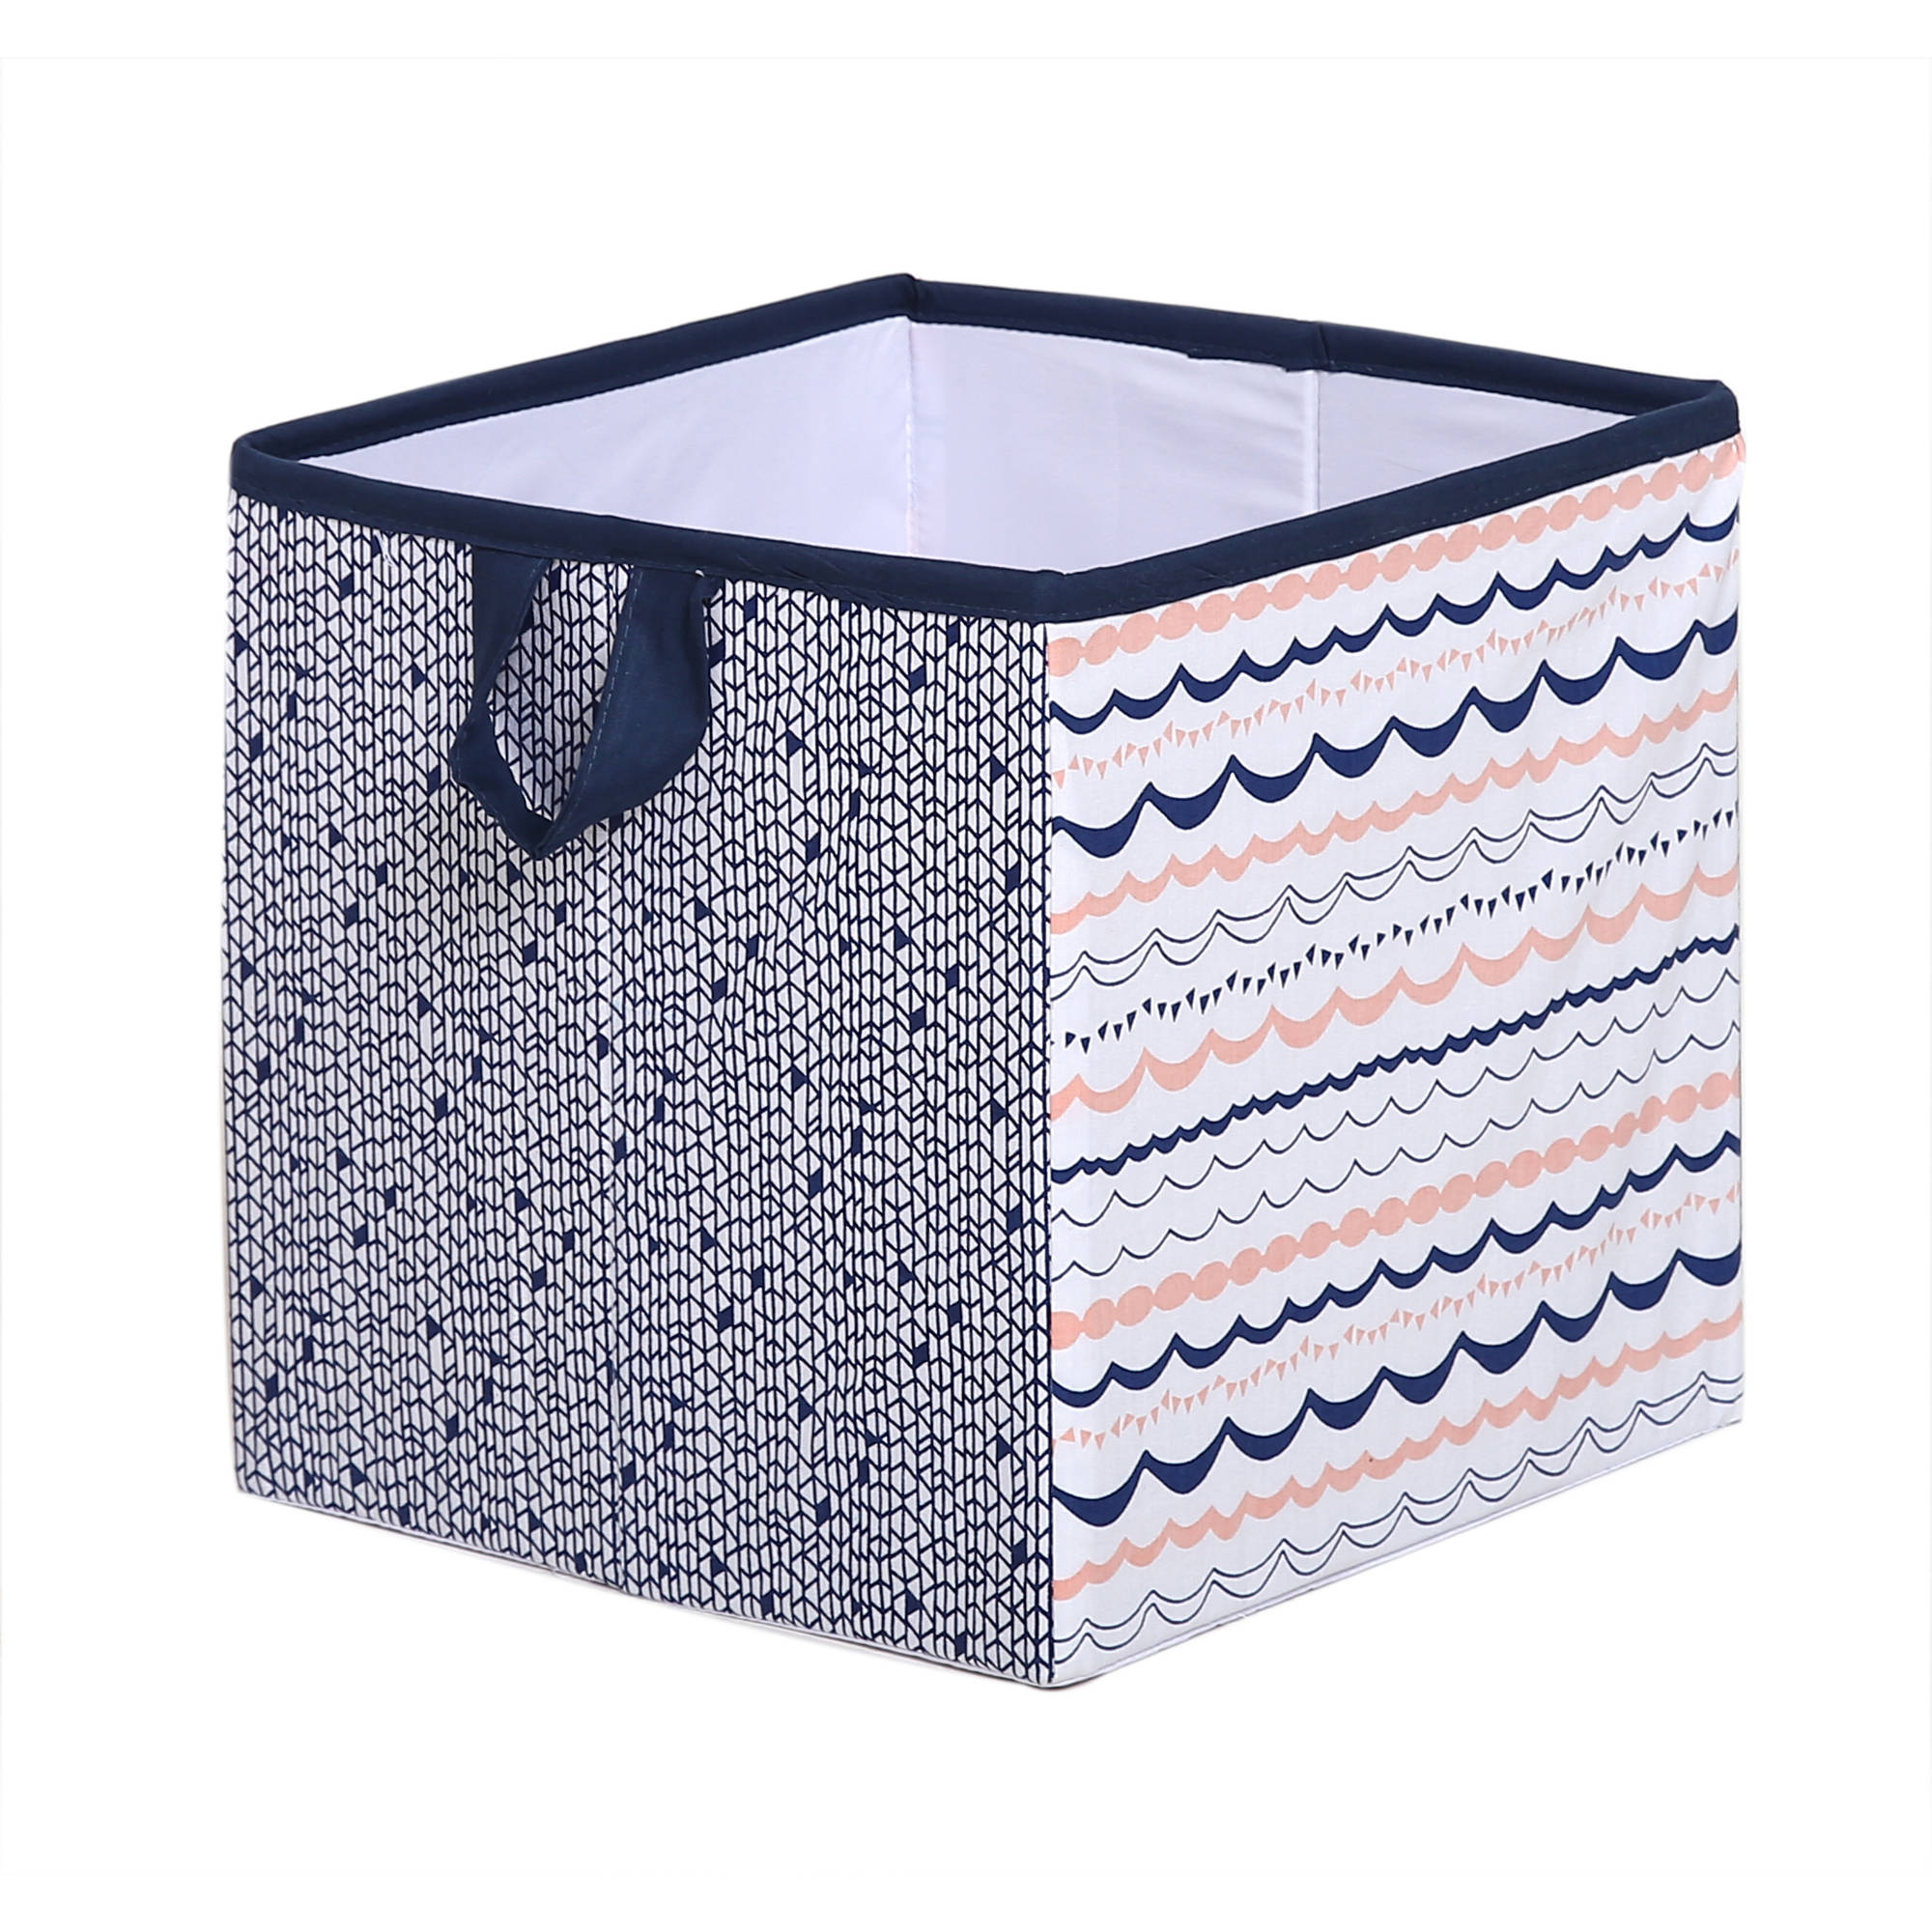 Bacati   Tribal Olivia Coral/Navy Cotton Percale Fabric Covered Storage,  Small Box,